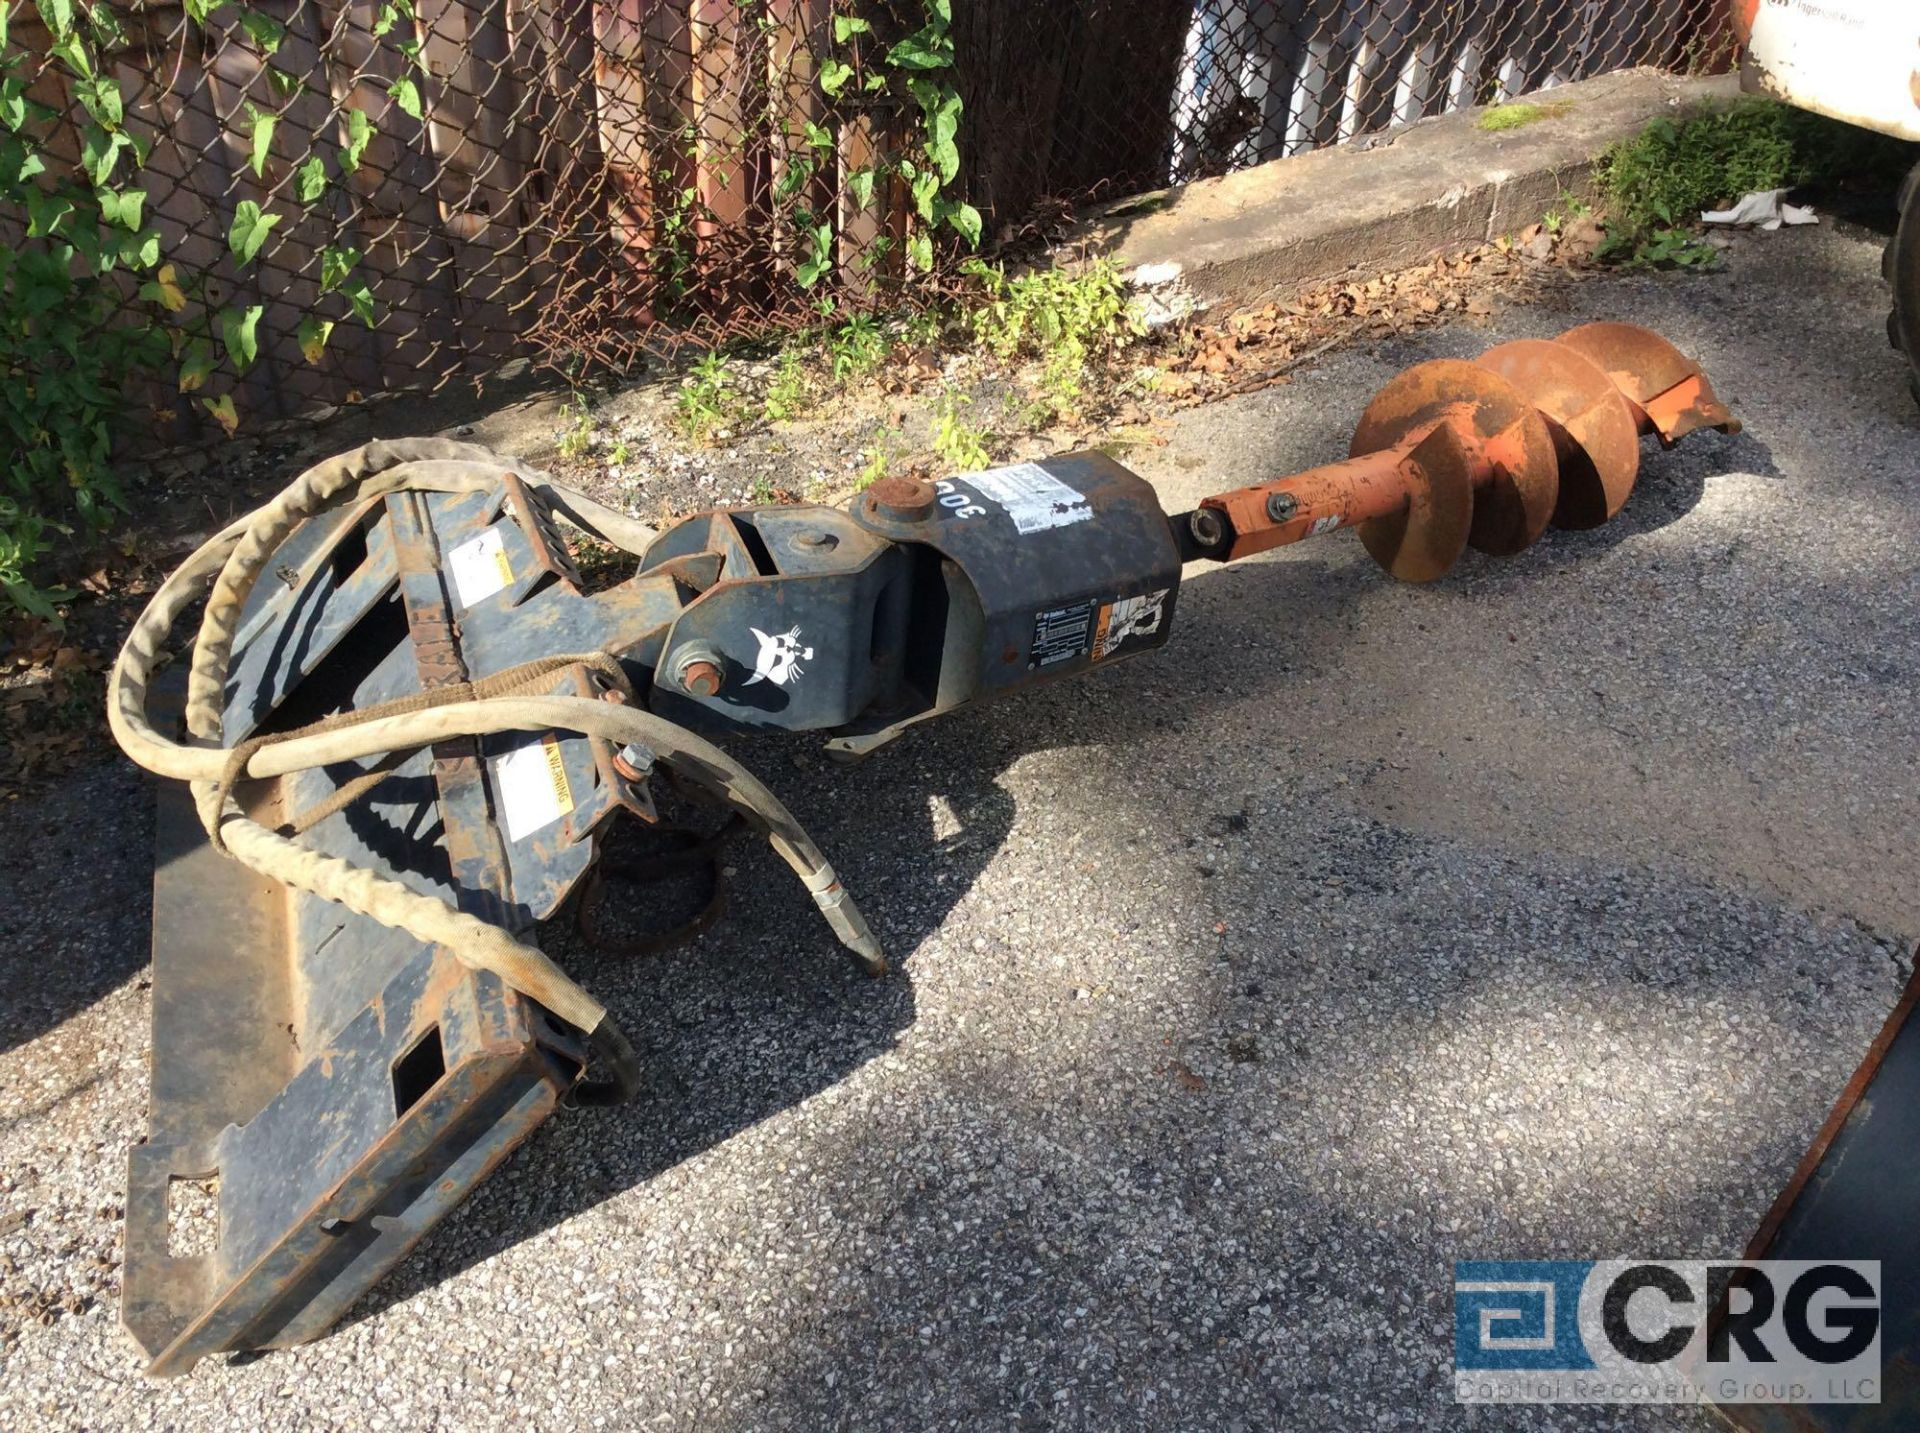 Lot 321B - Bobcat 30C auger attachment with 12 inch and 30 inch auger bits